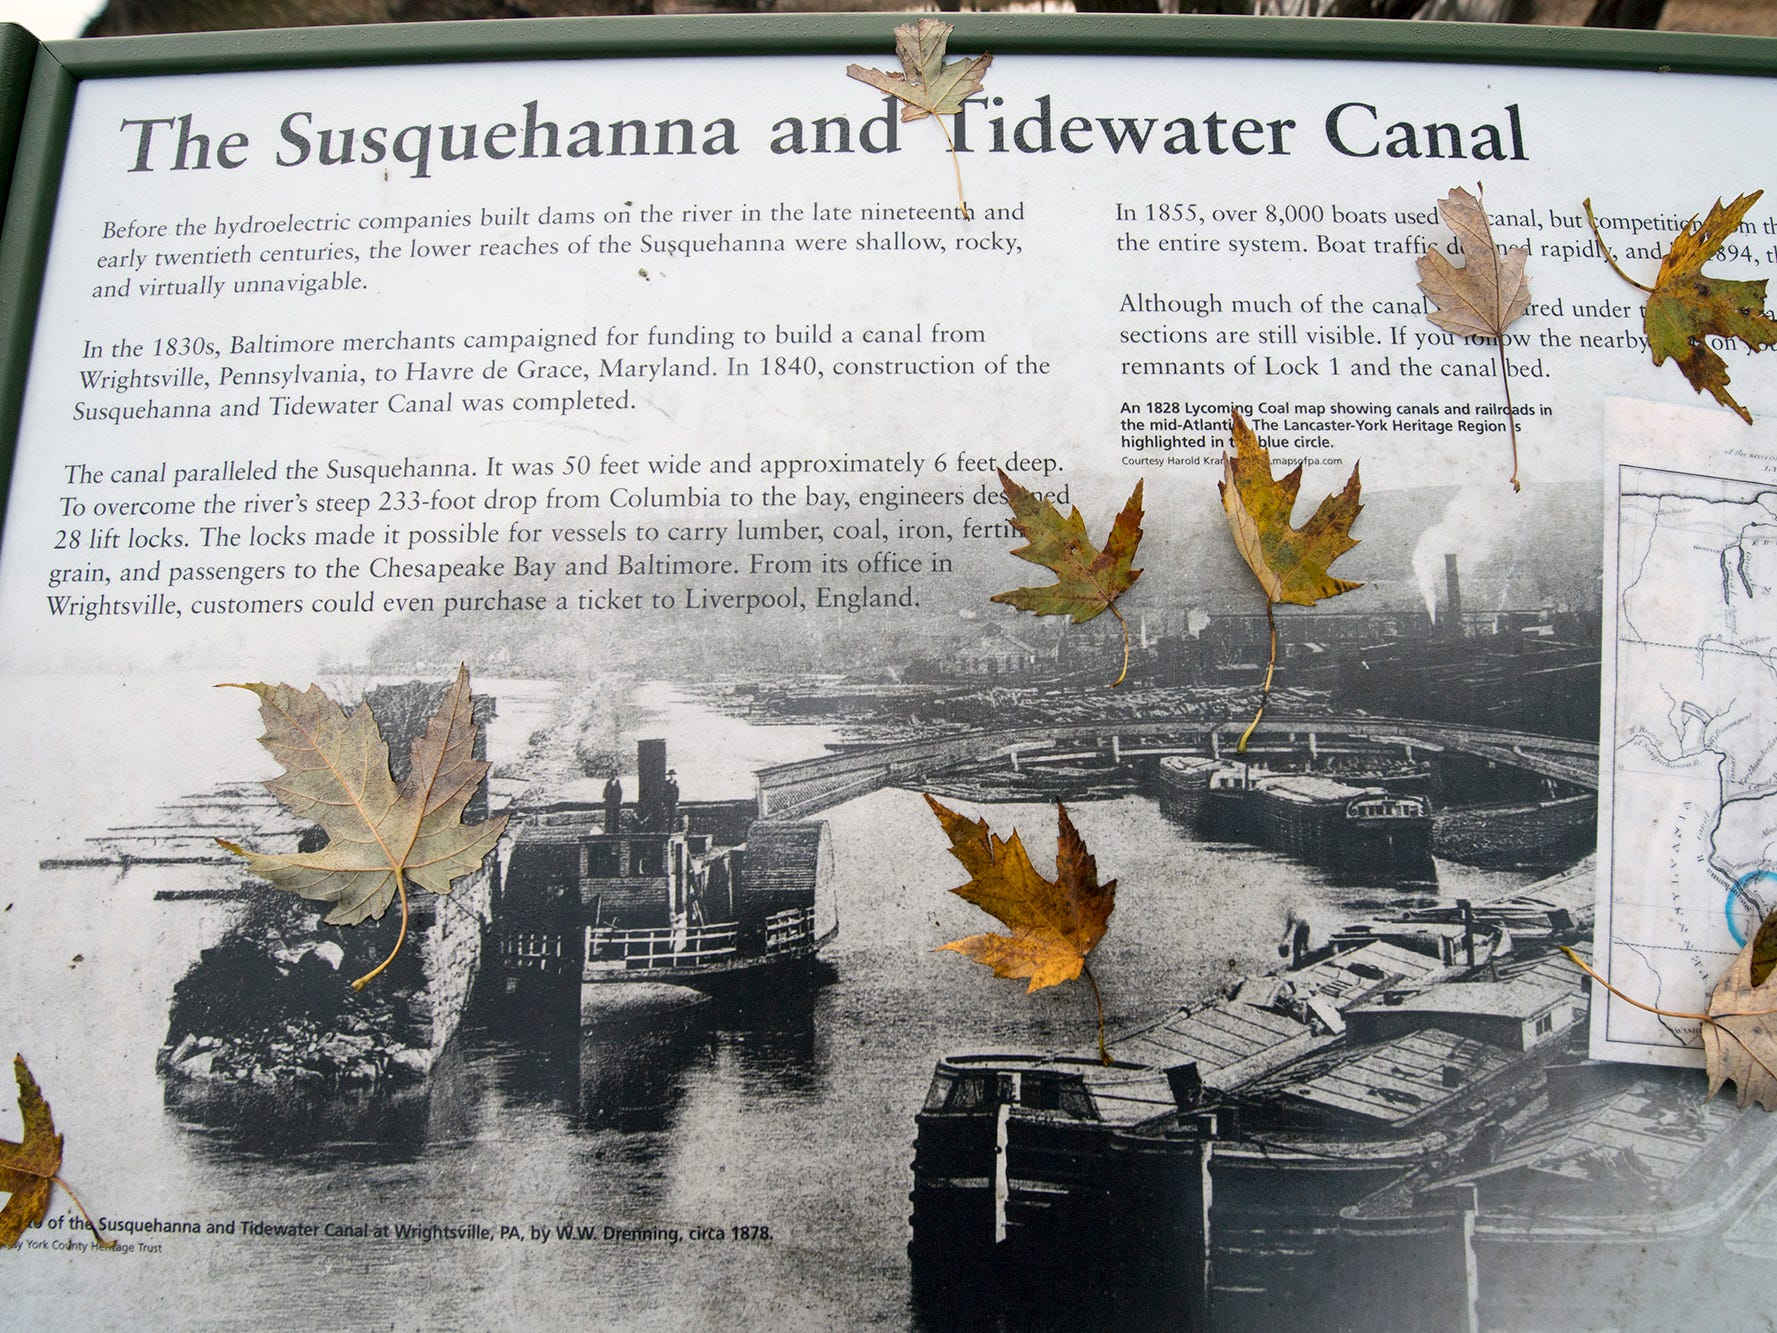 Wet, colored leaves stick to a plaque for the Susquehanna and Tidewater Canal in Wrightsville on Sunday November 25, 2018.